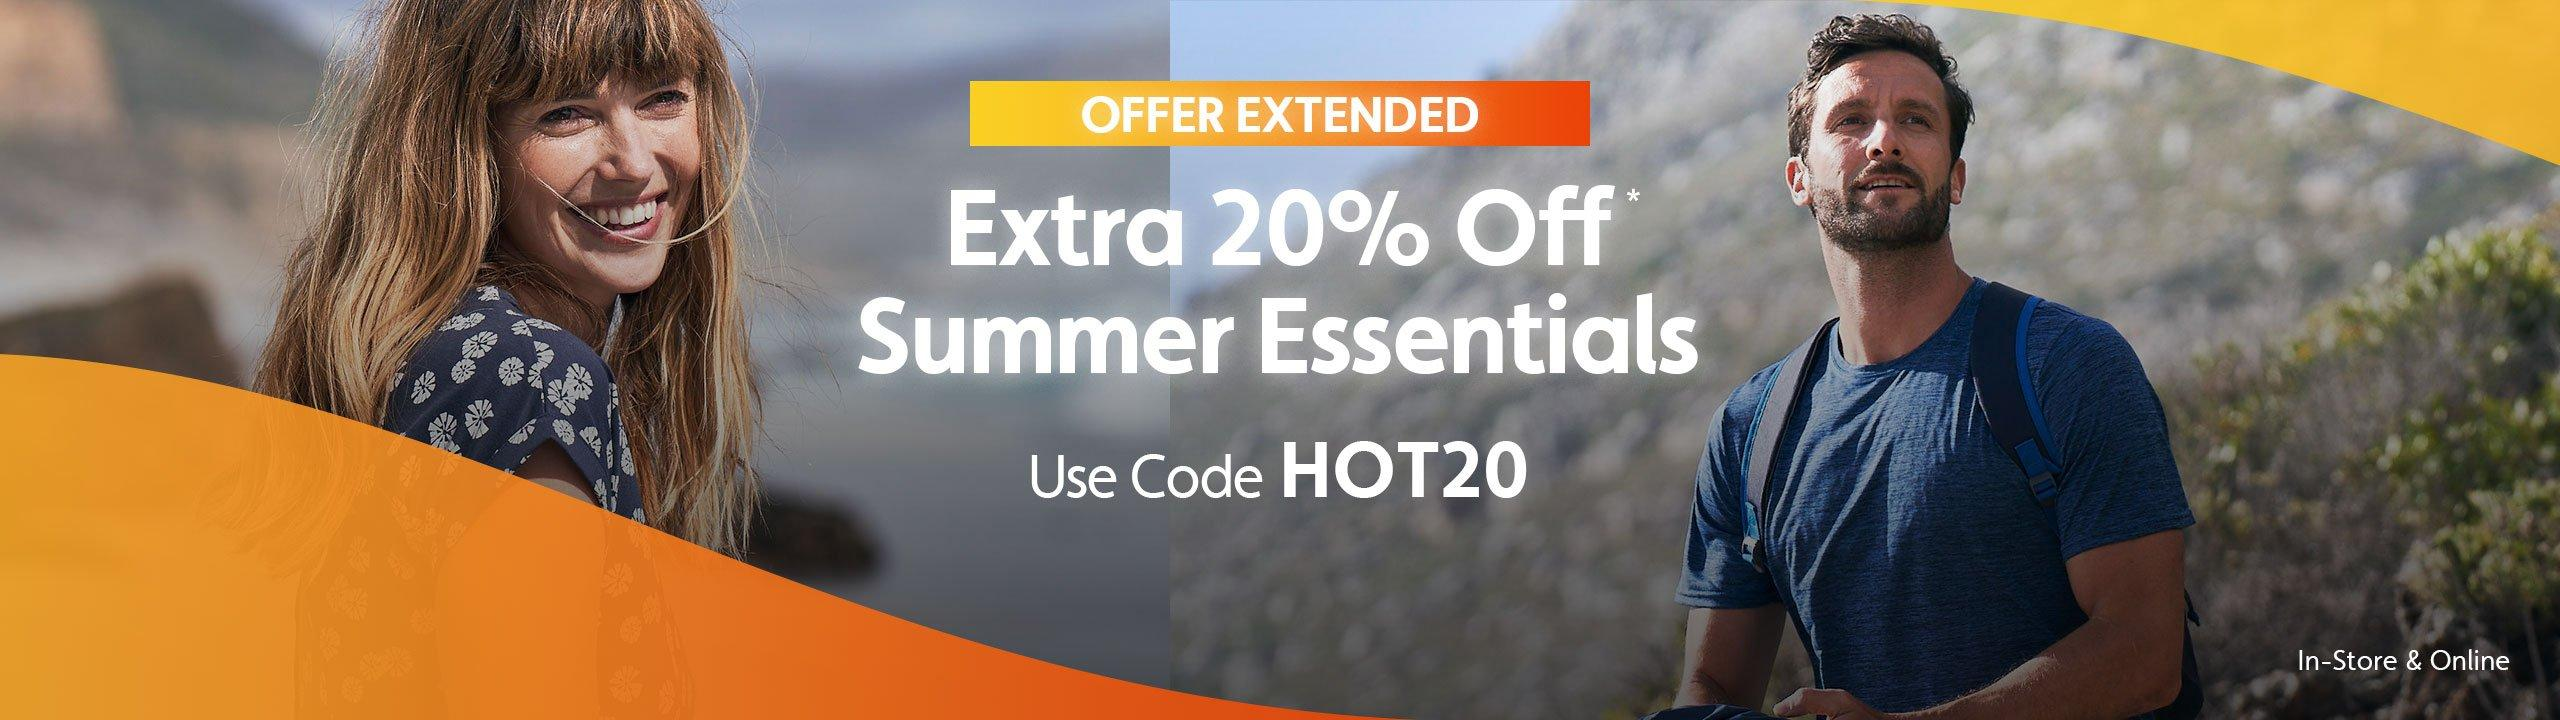 Extra 20% Off Summer Essentials - Offer Extended